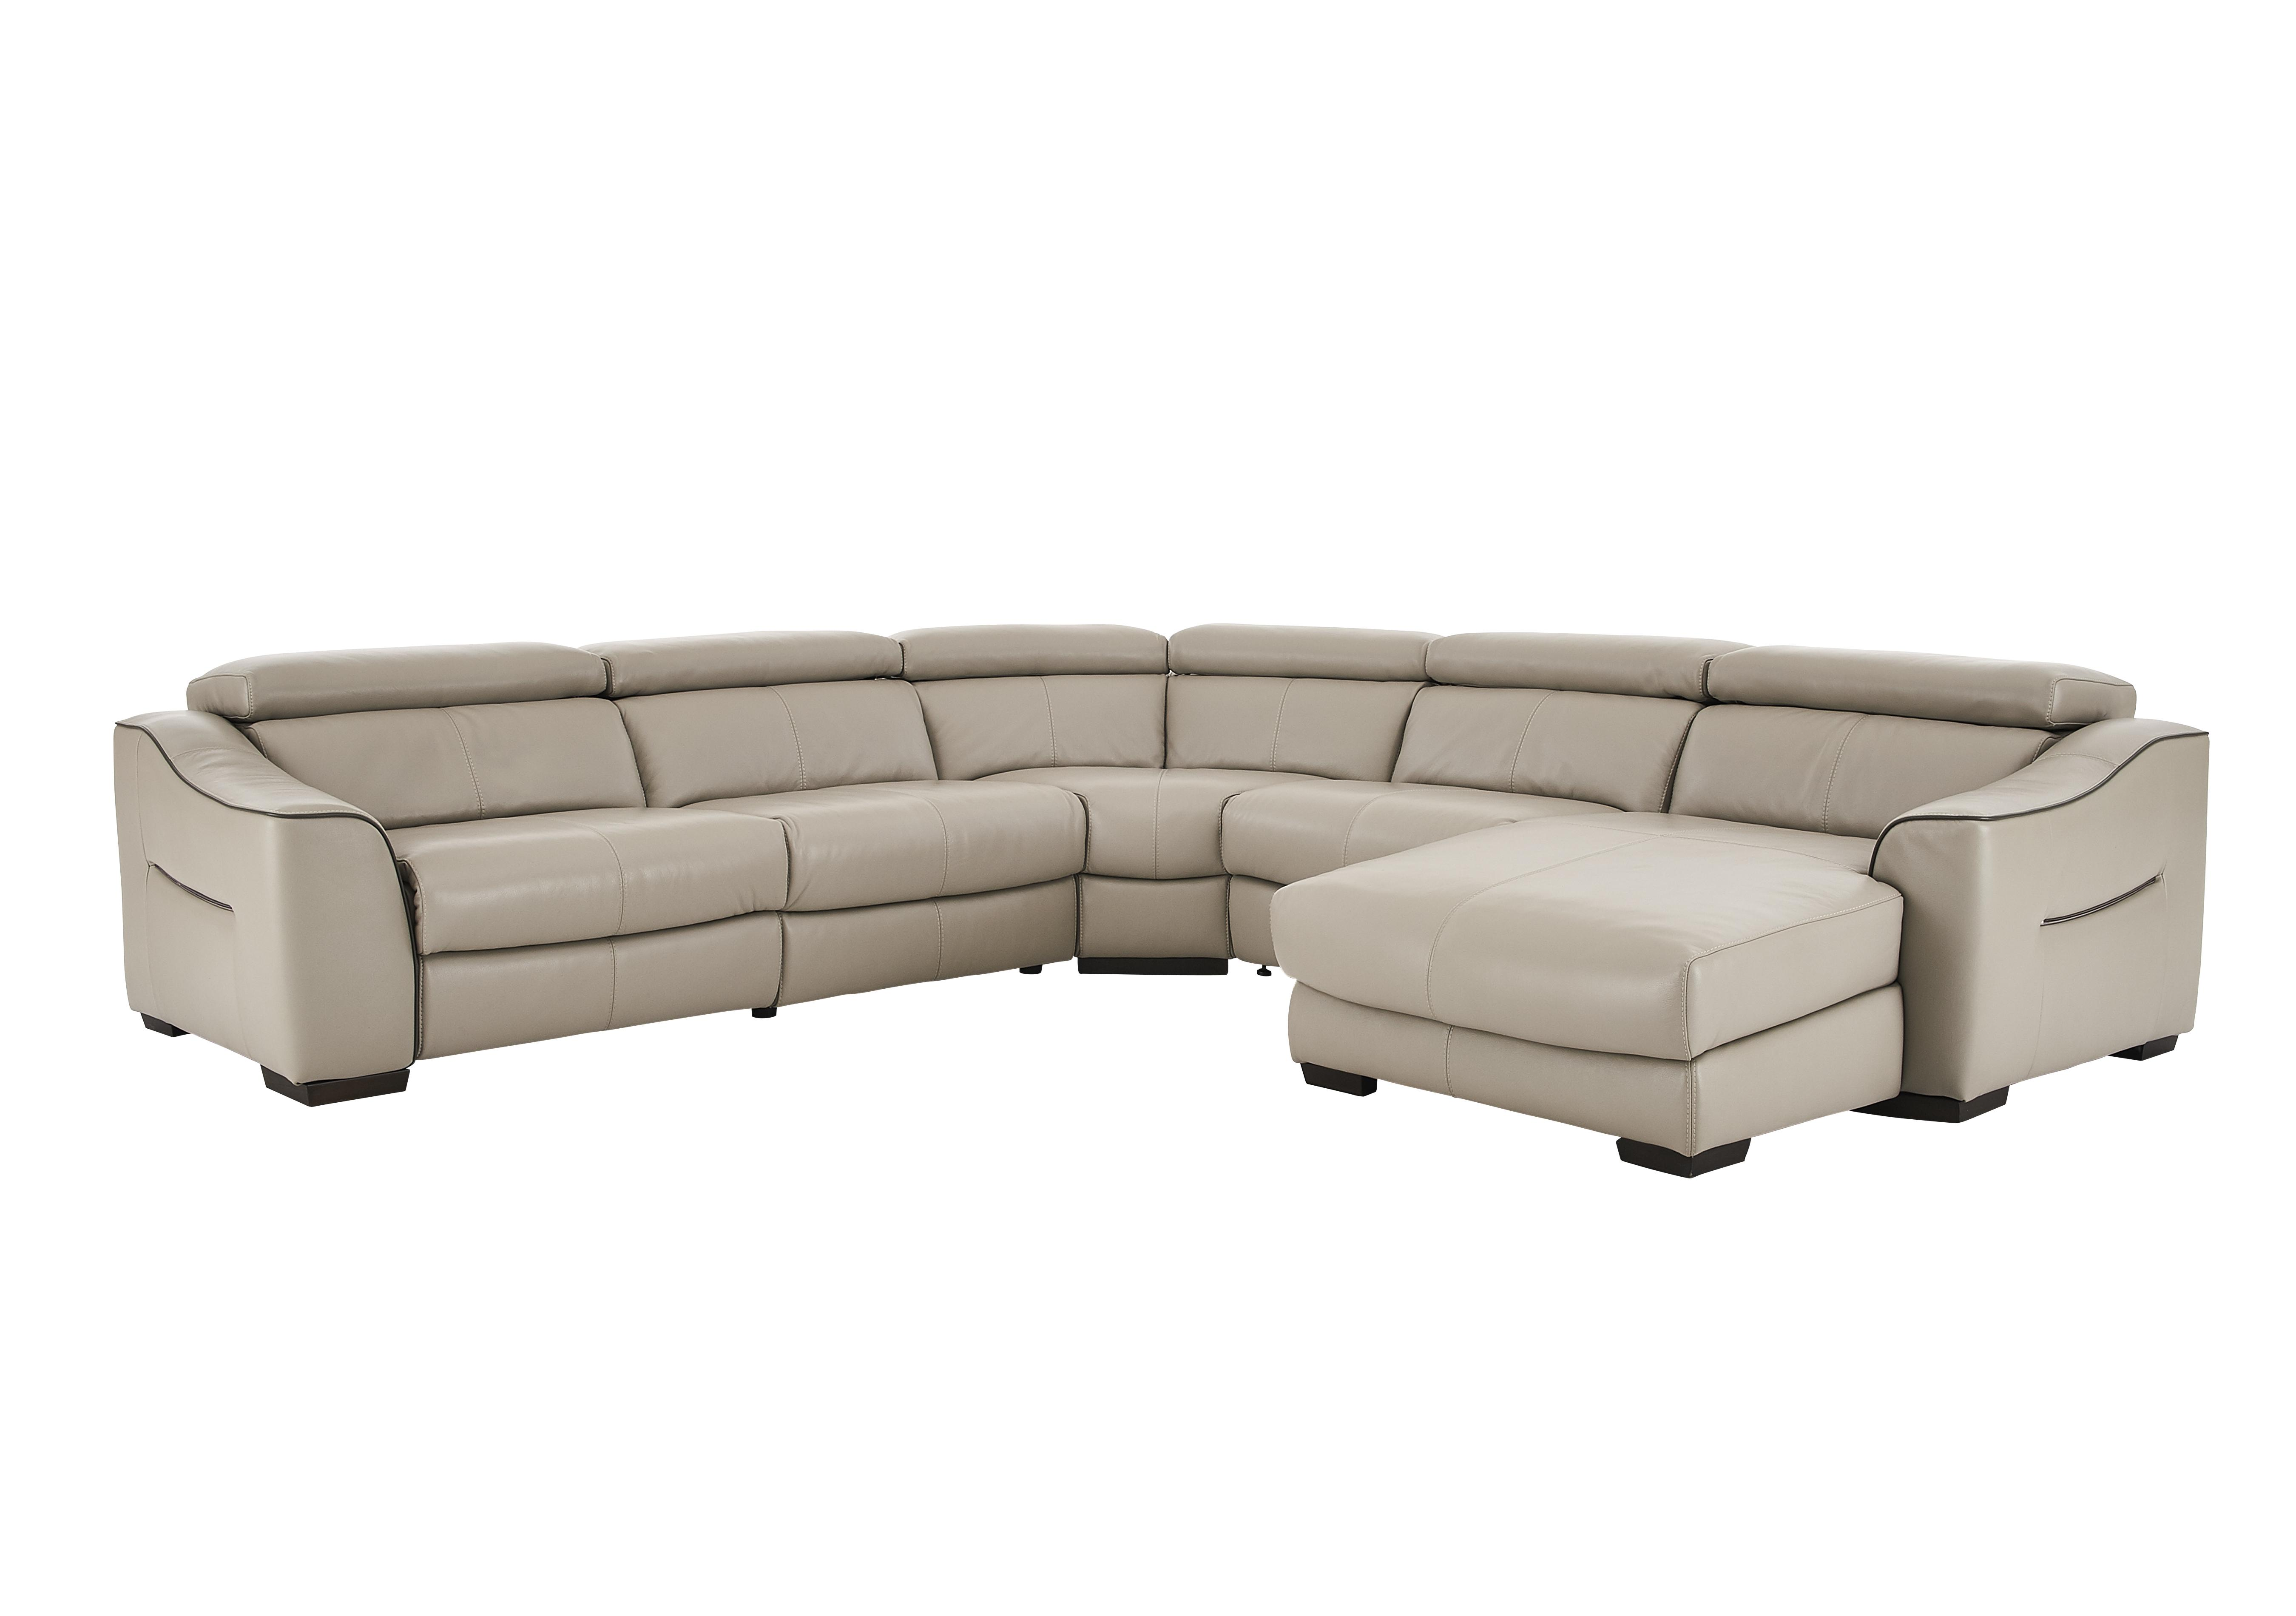 Elixir Leather Recliner Corner Sofa   Limited Stock!   World Of Leather    Furniture Village